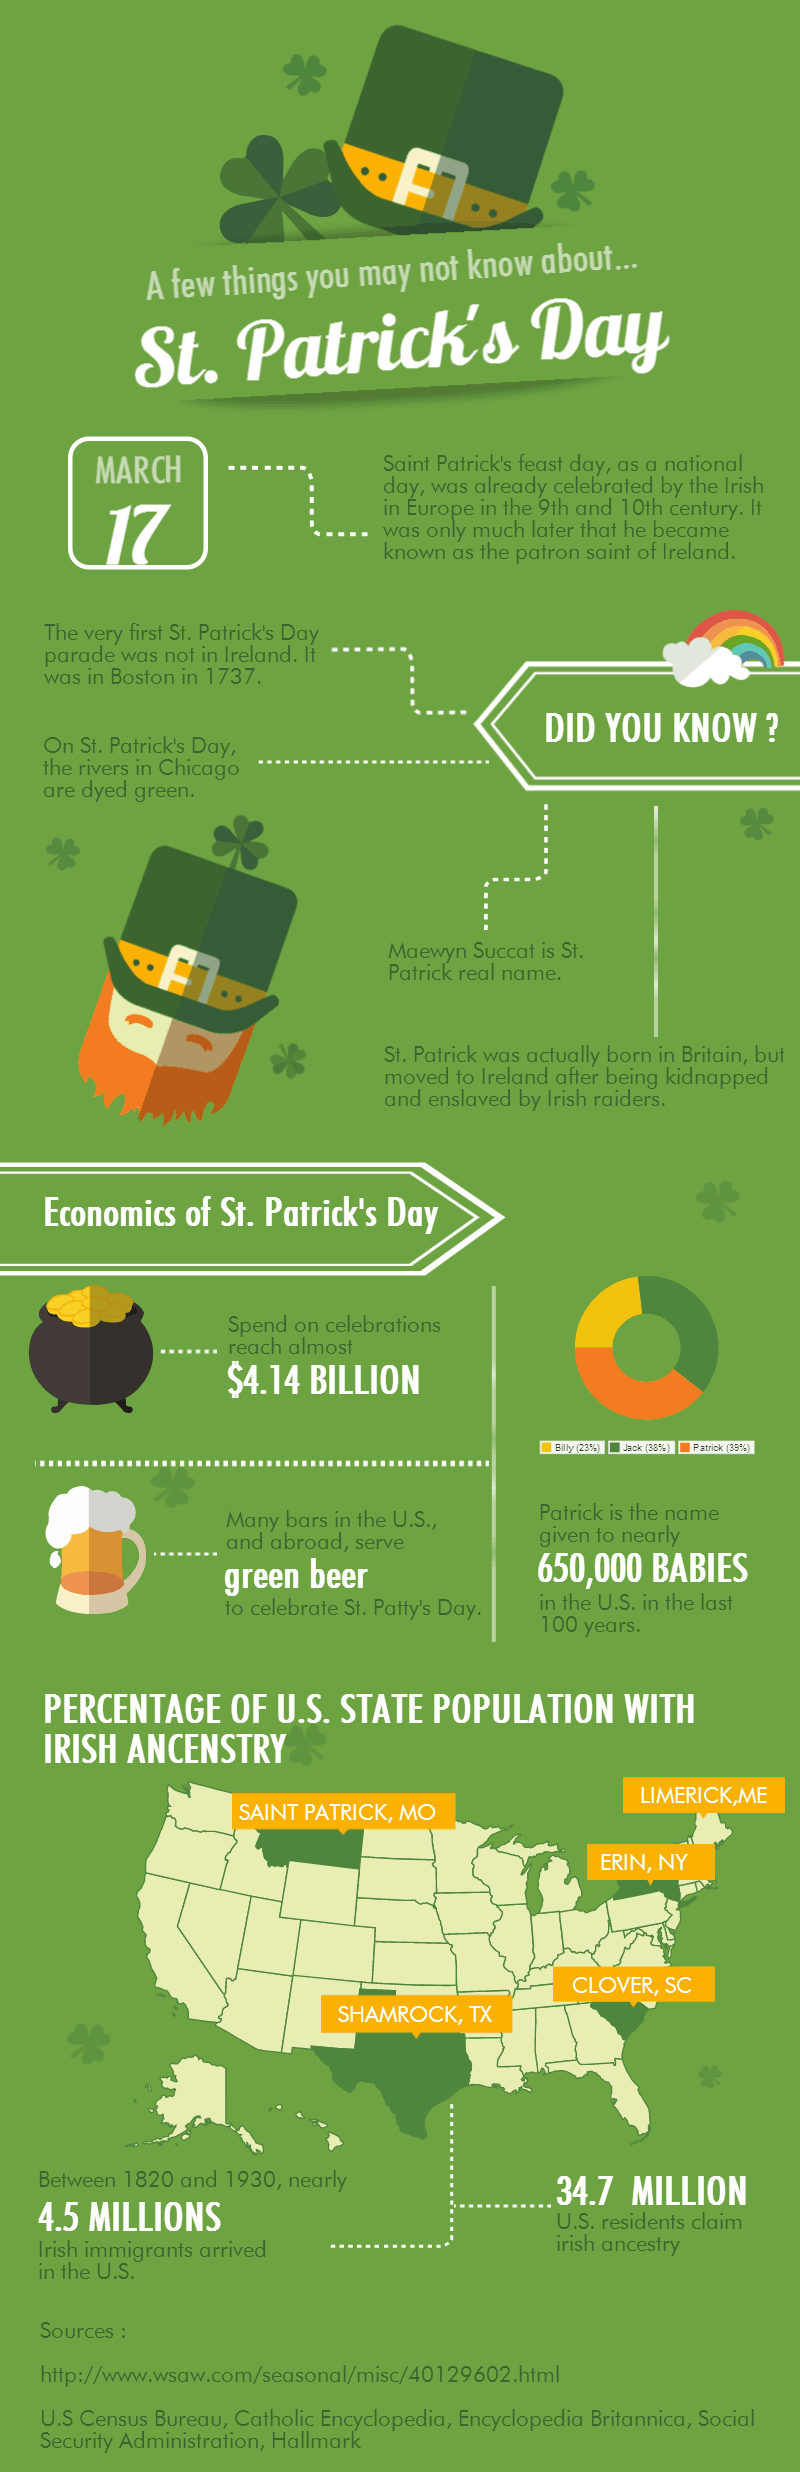 Create your own St. Patrick's Day infographic!